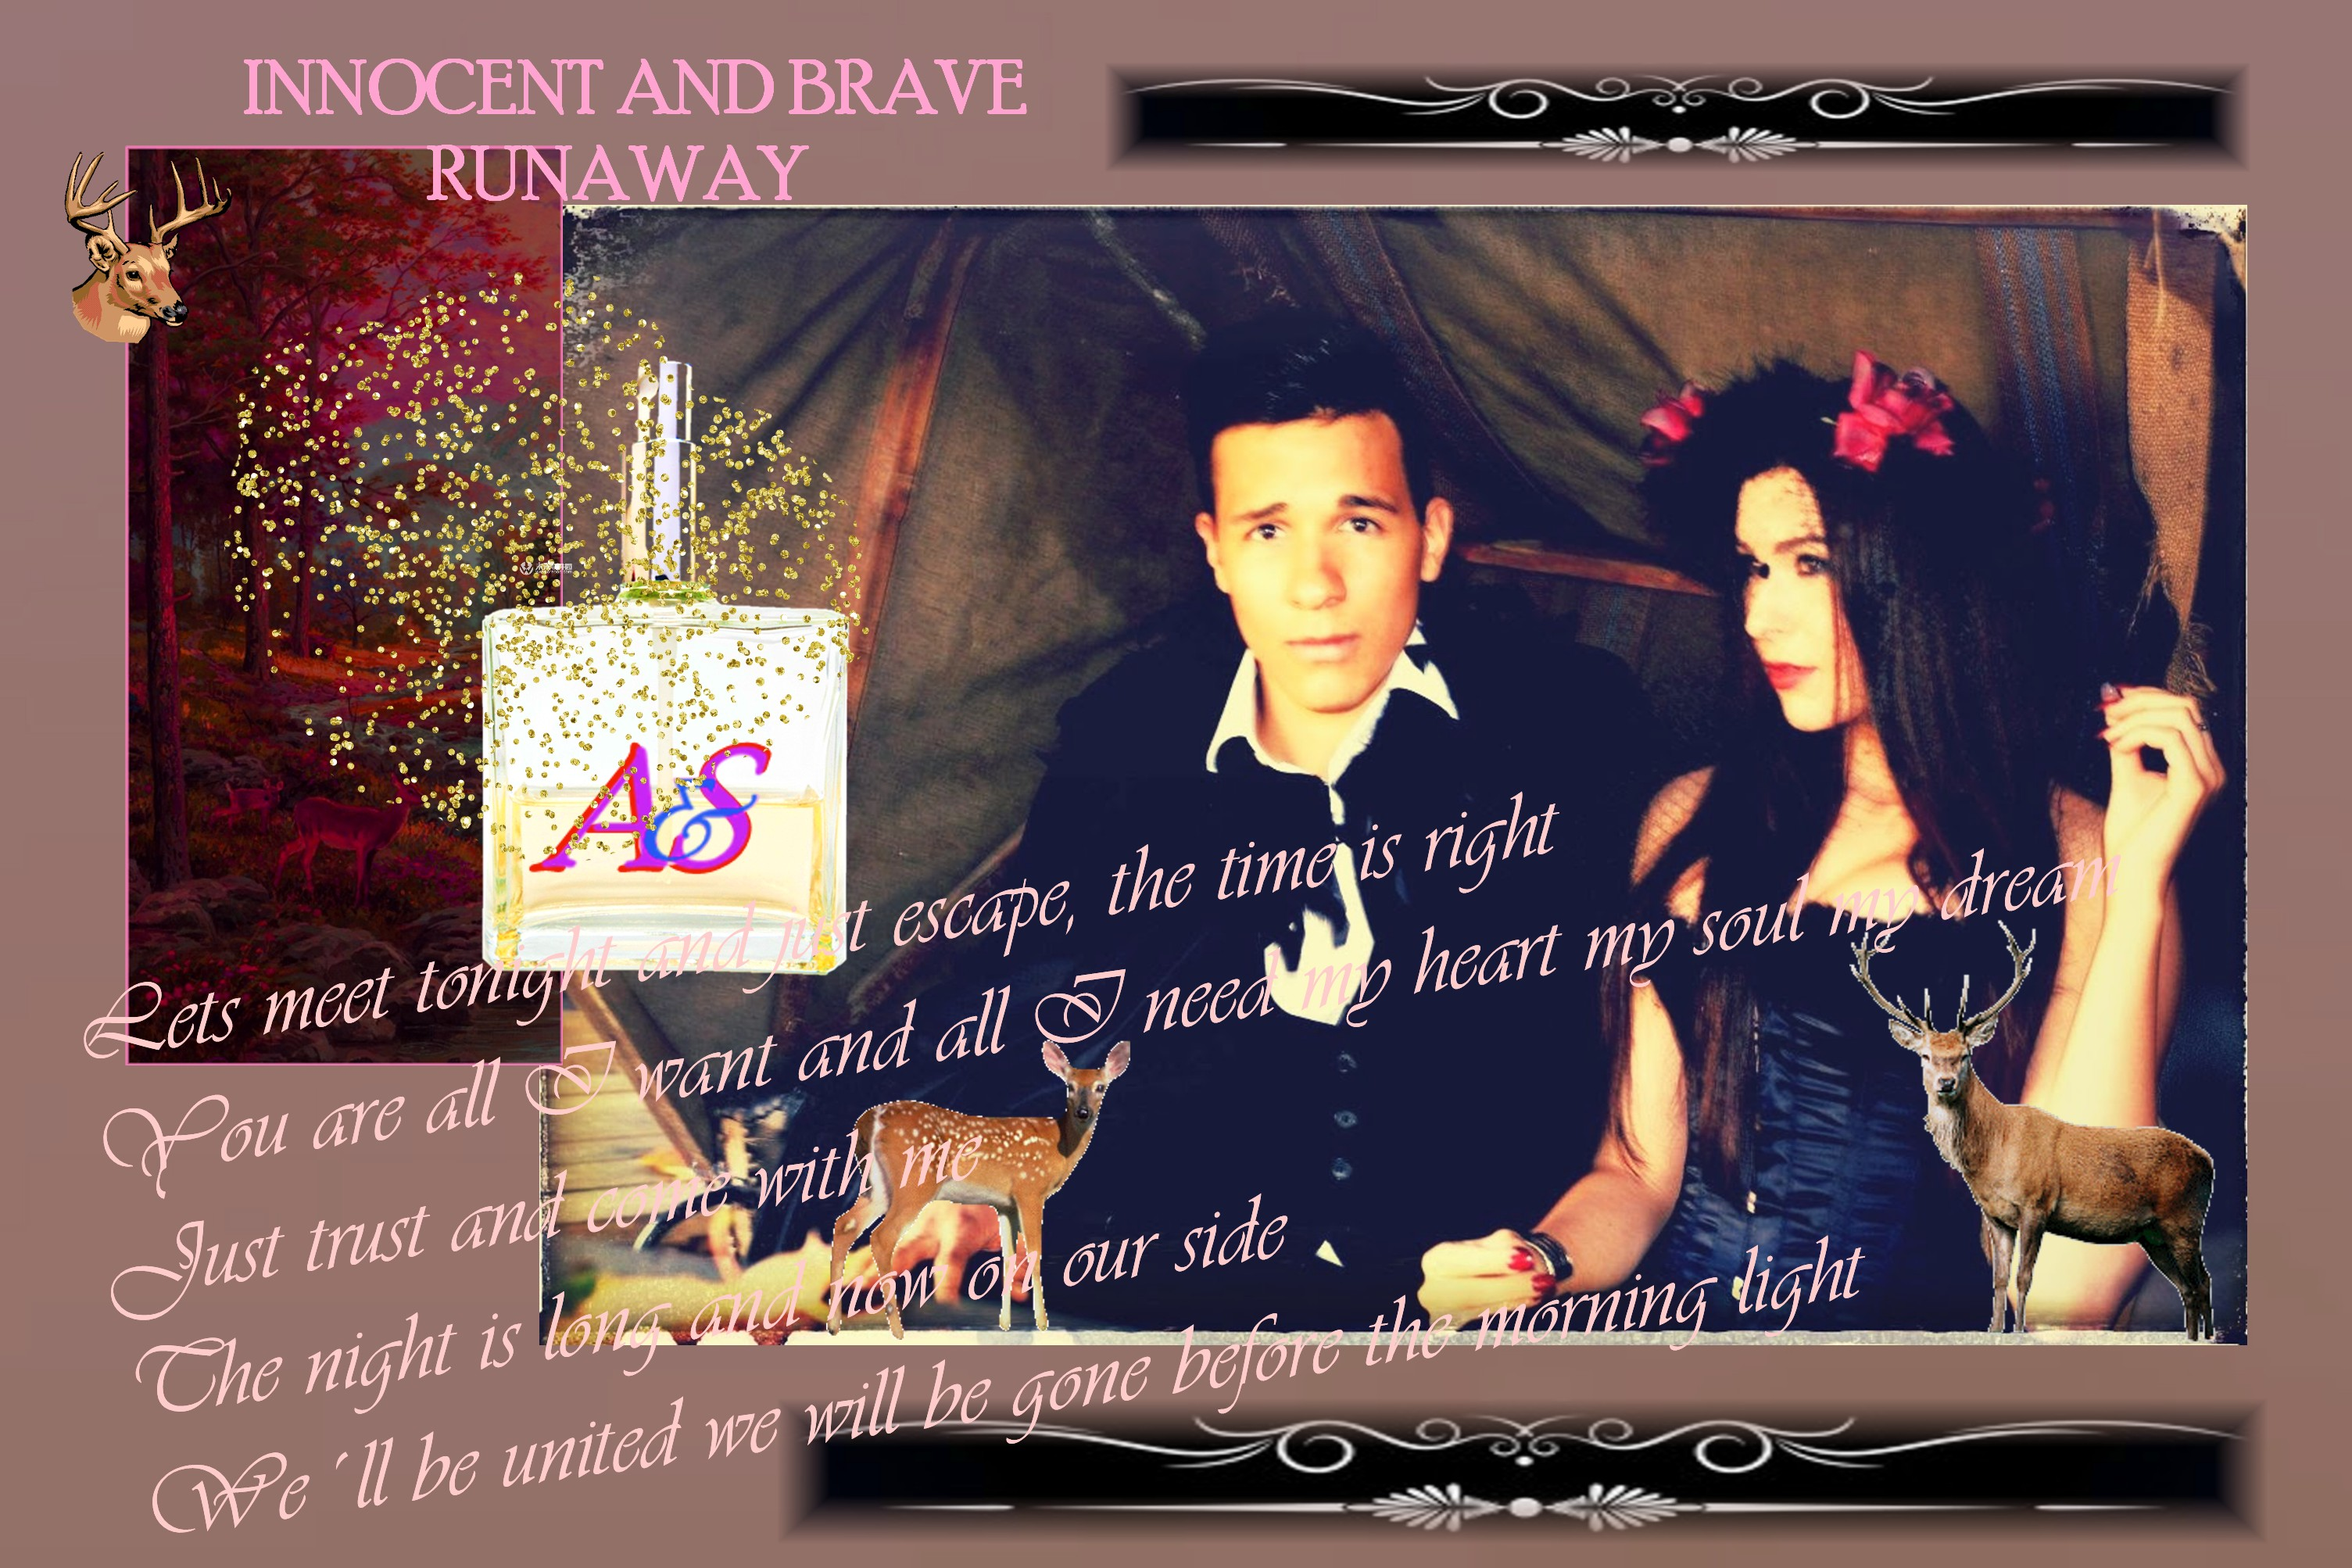 Brave and Inocent